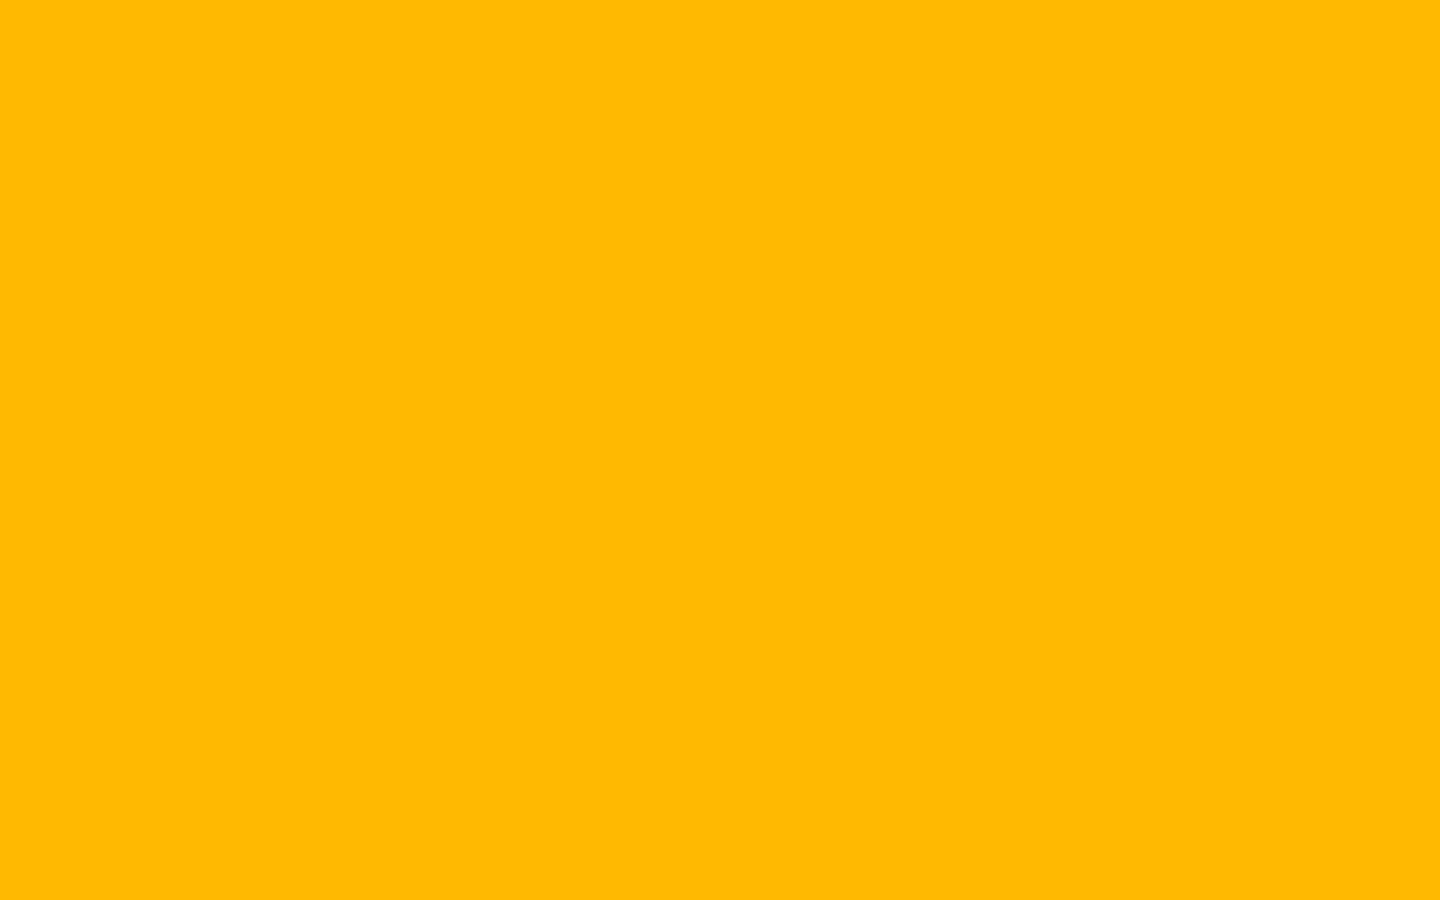 1440x900 Selective Yellow Solid Color Background